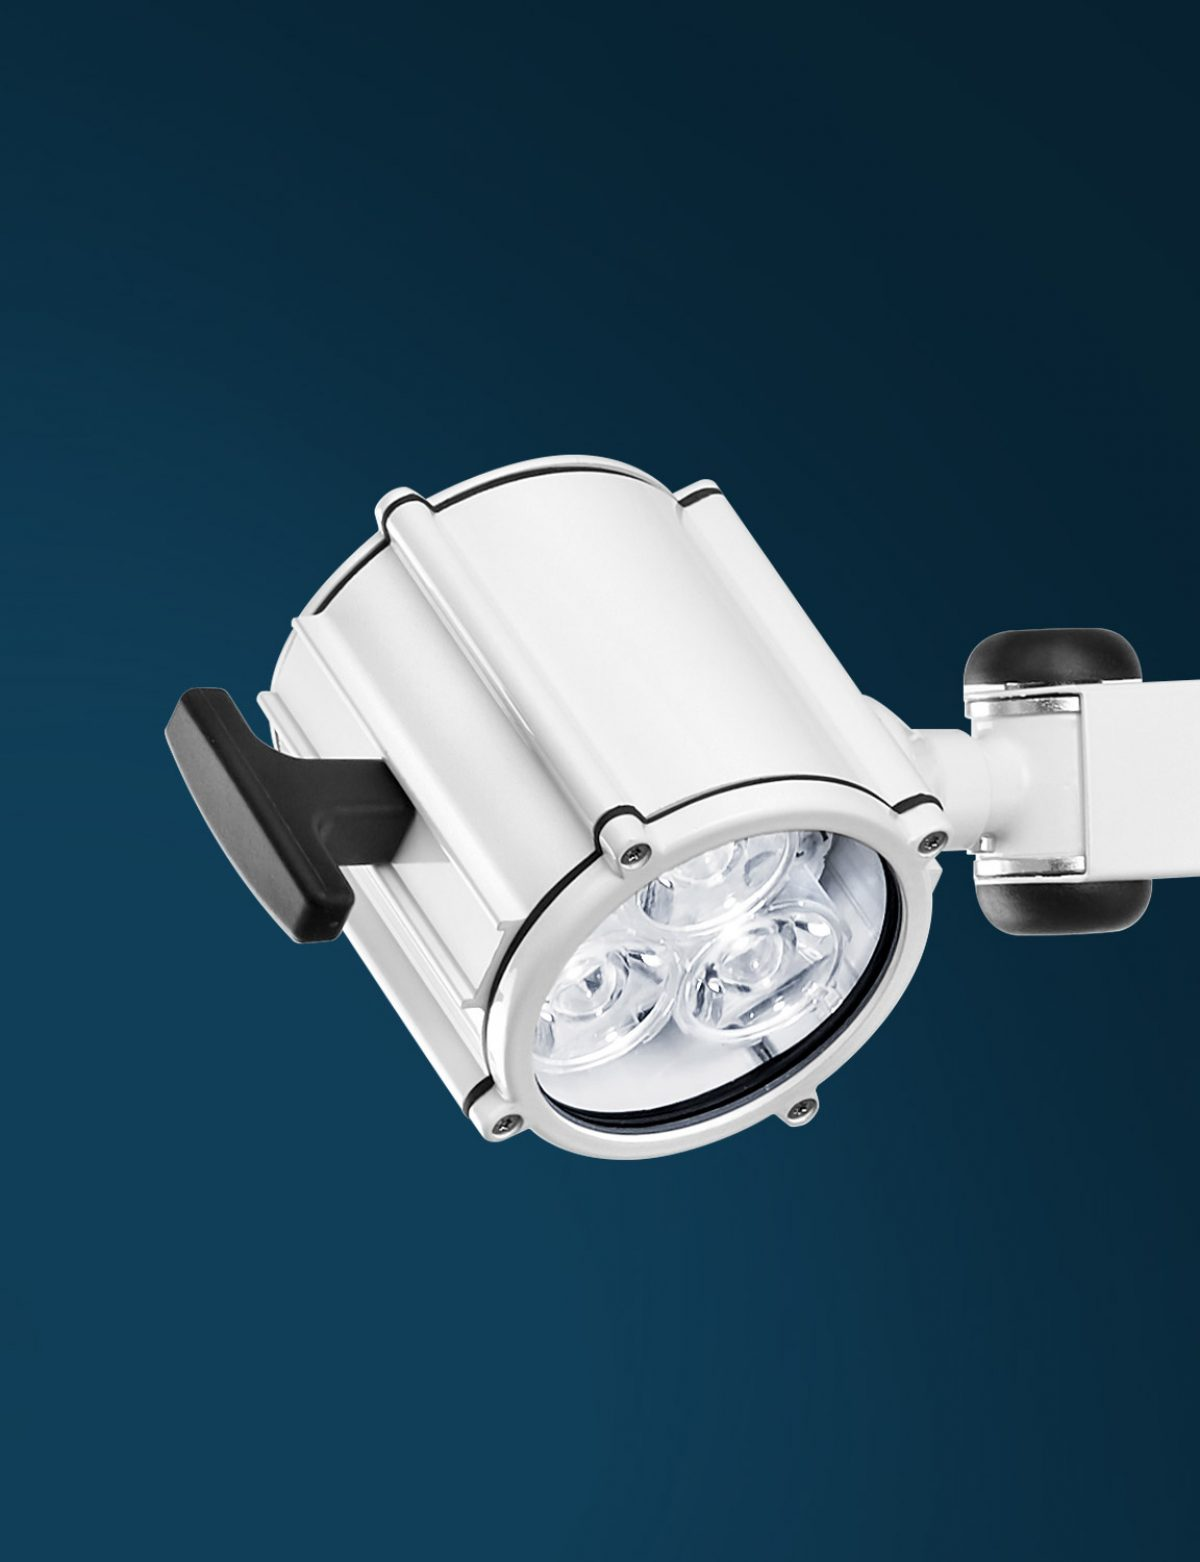 The peculiar design of each product of the series guarantees a reliable solution whenever light is needed.